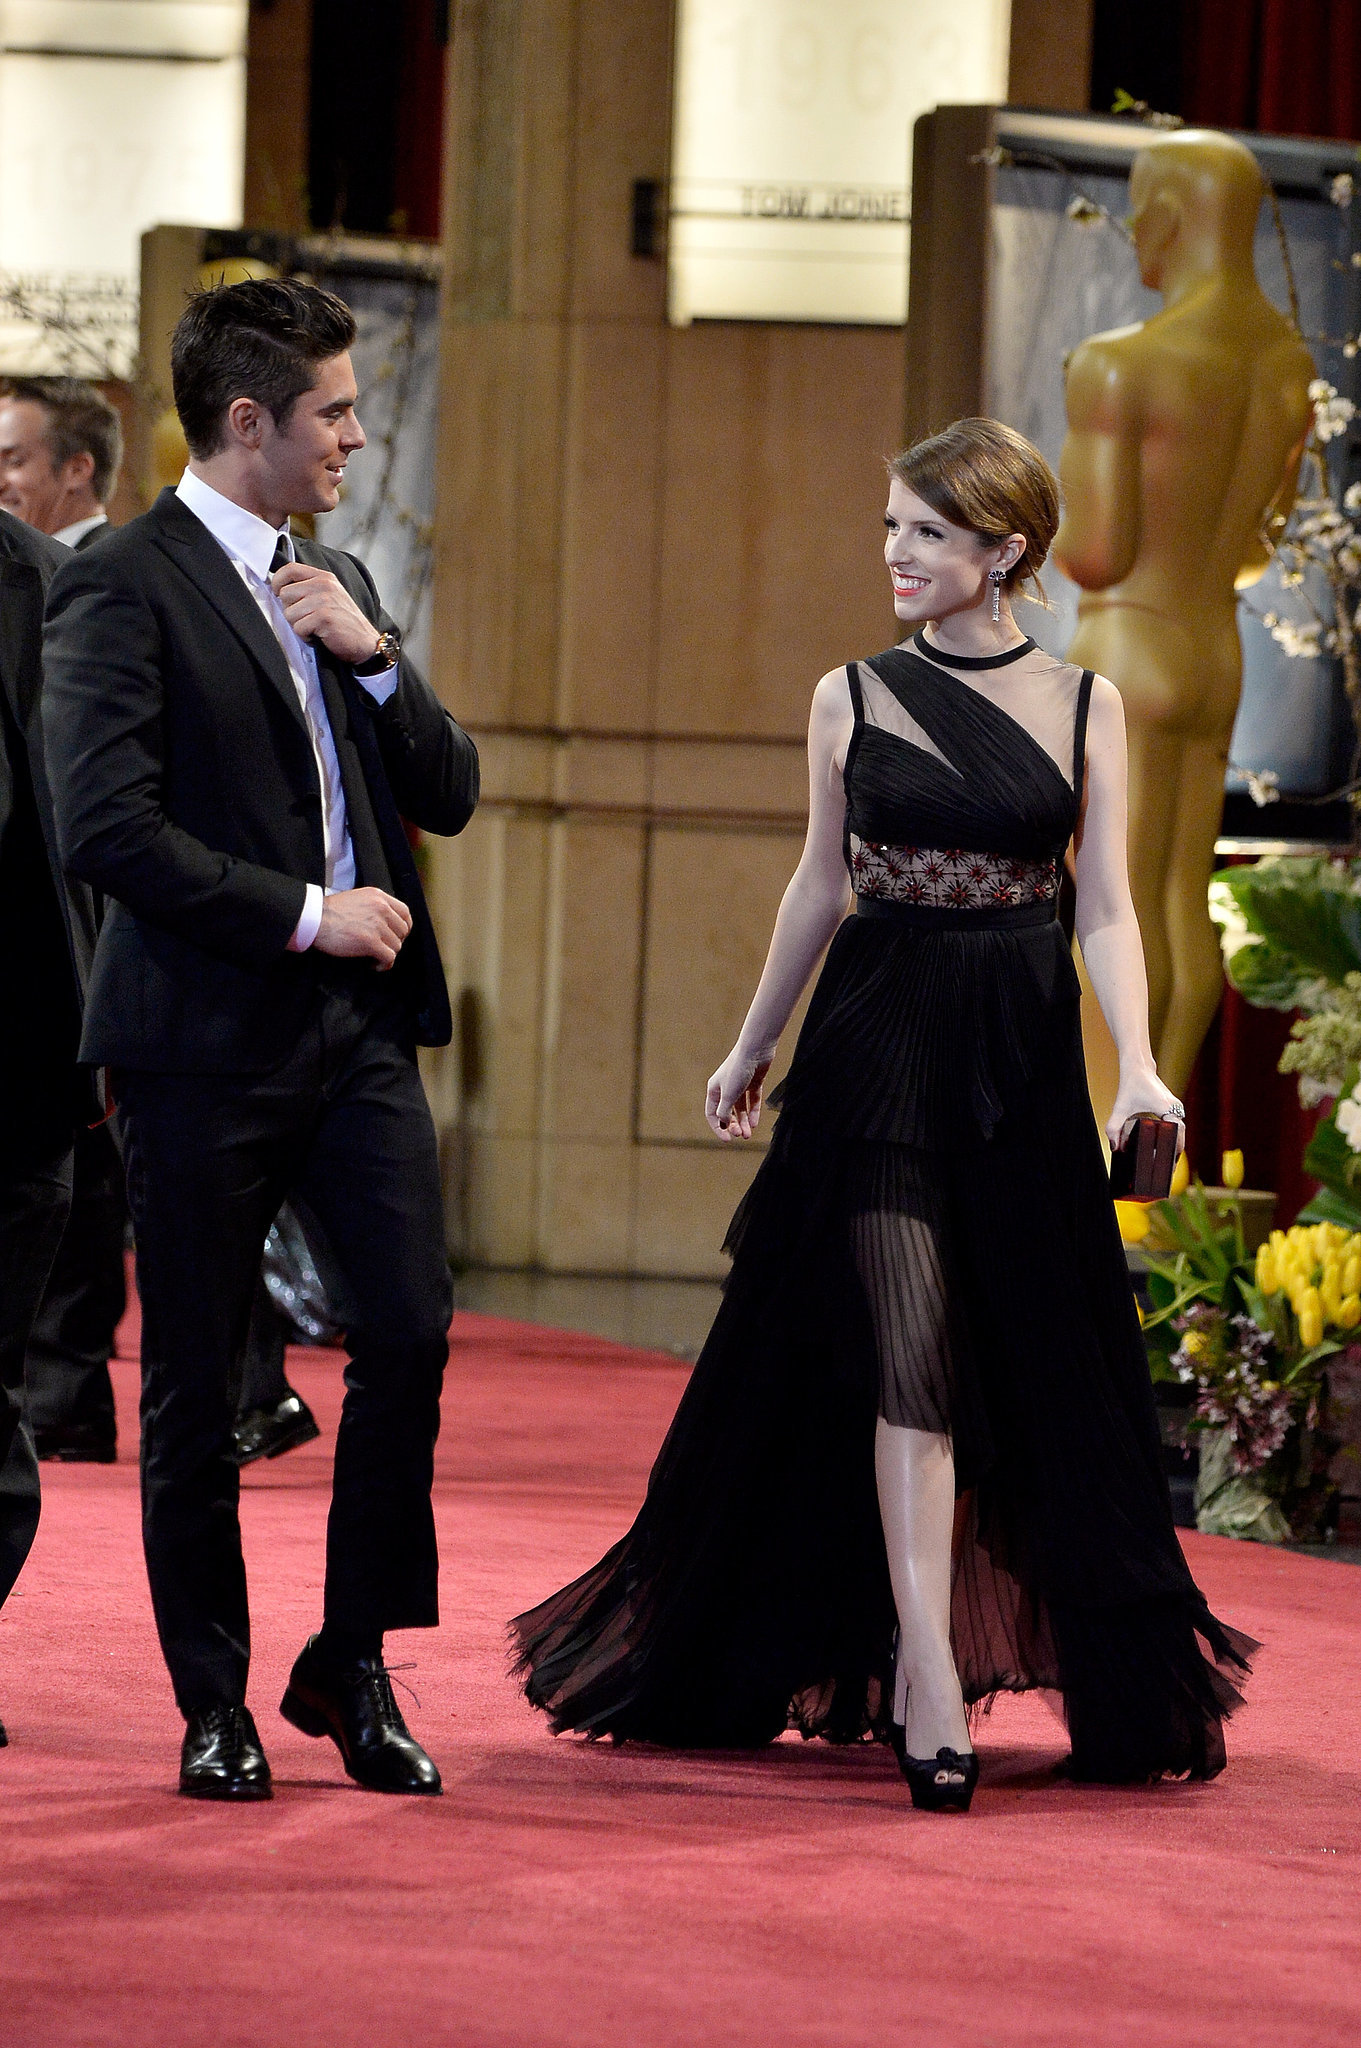 Zac Efron and Anna Kendrick shared a look as they left the show together.